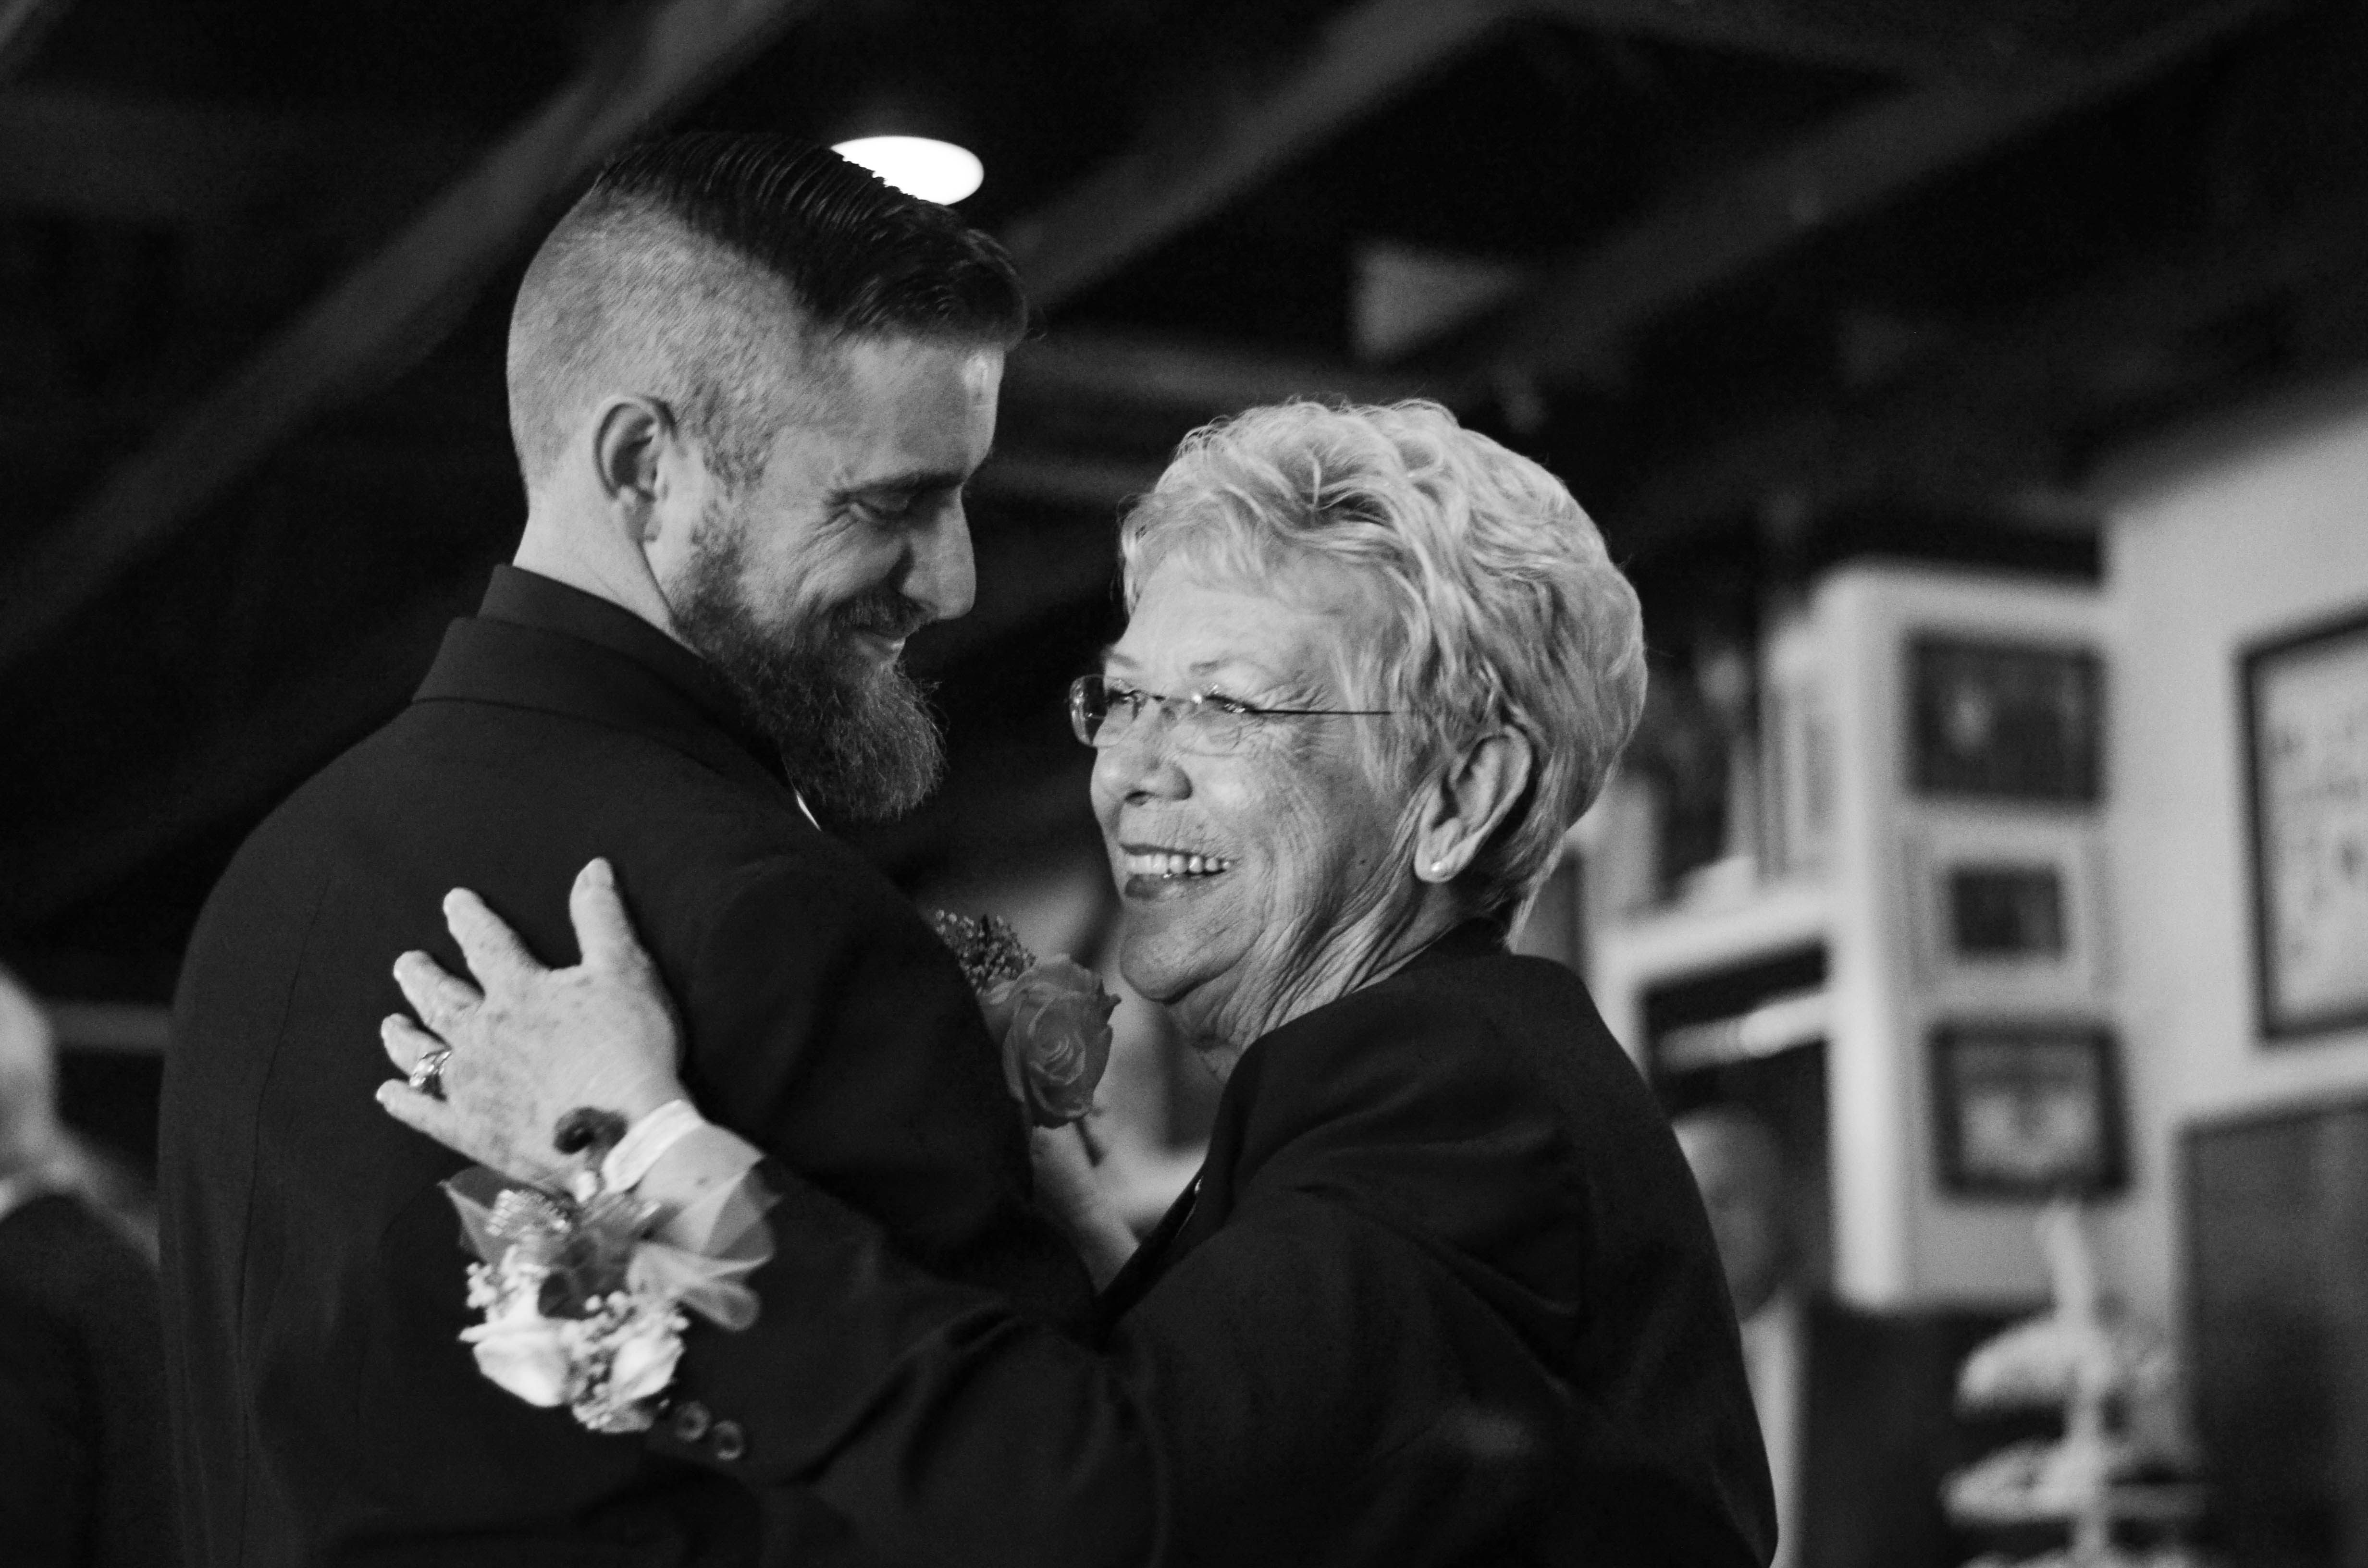 Dorothy McNeill dances with her veteran son at his wedding.